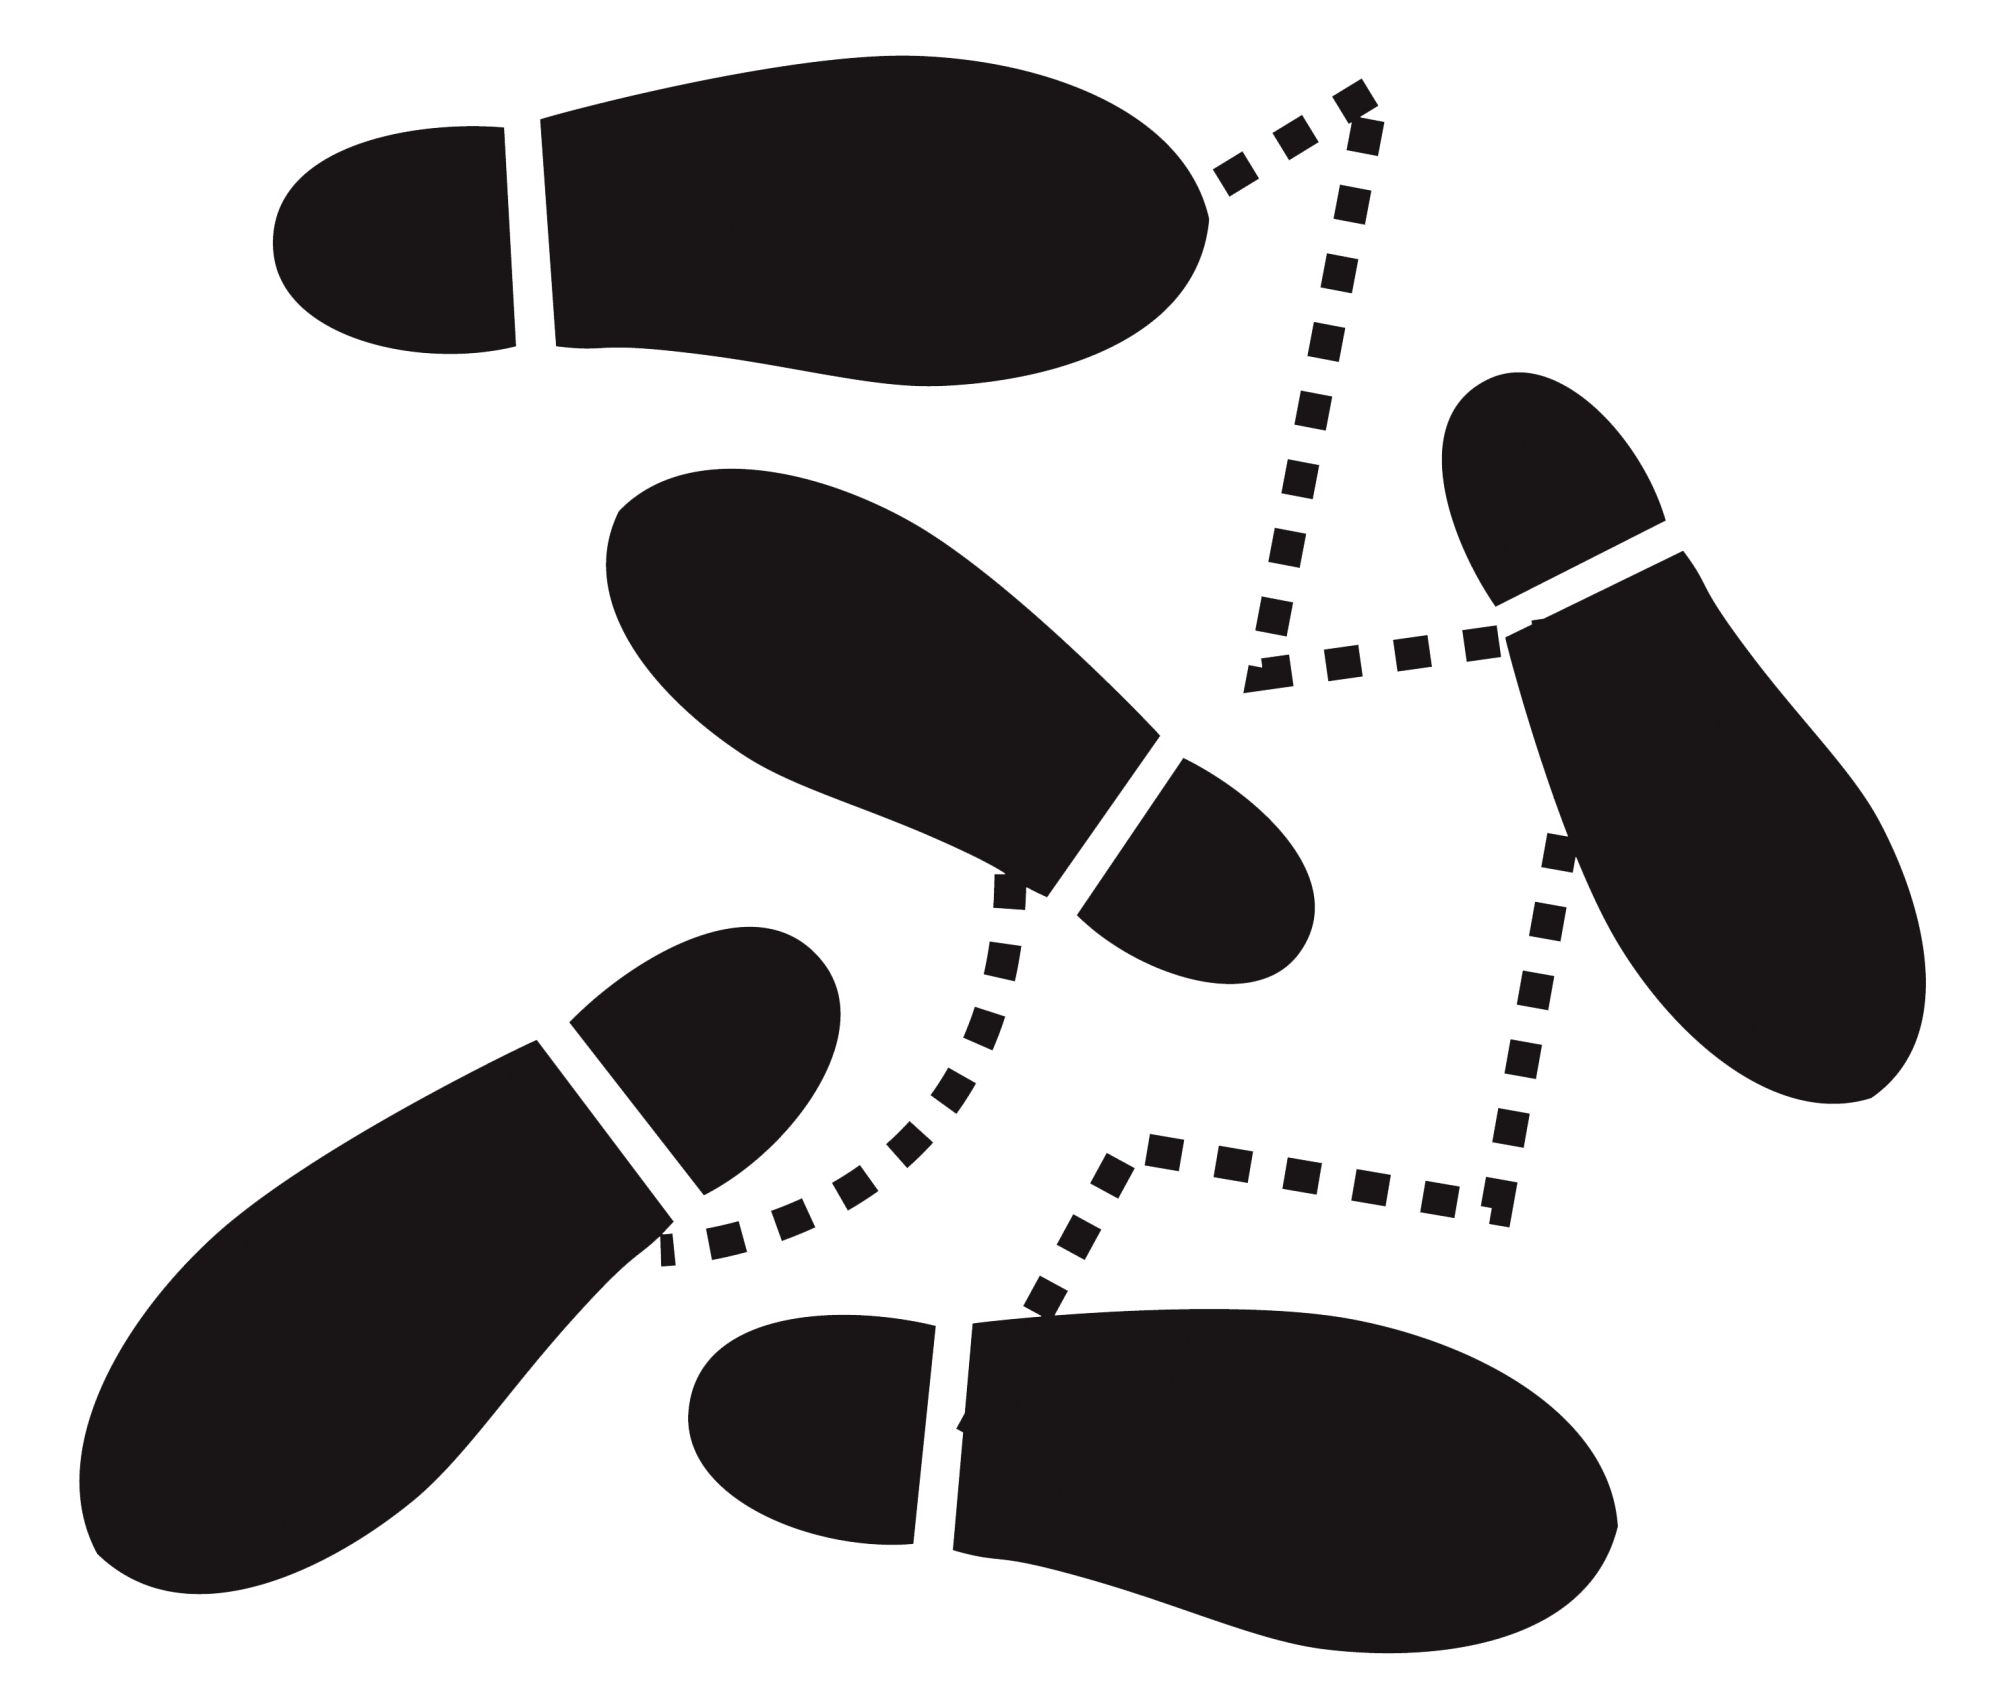 footsteps clipart dancing